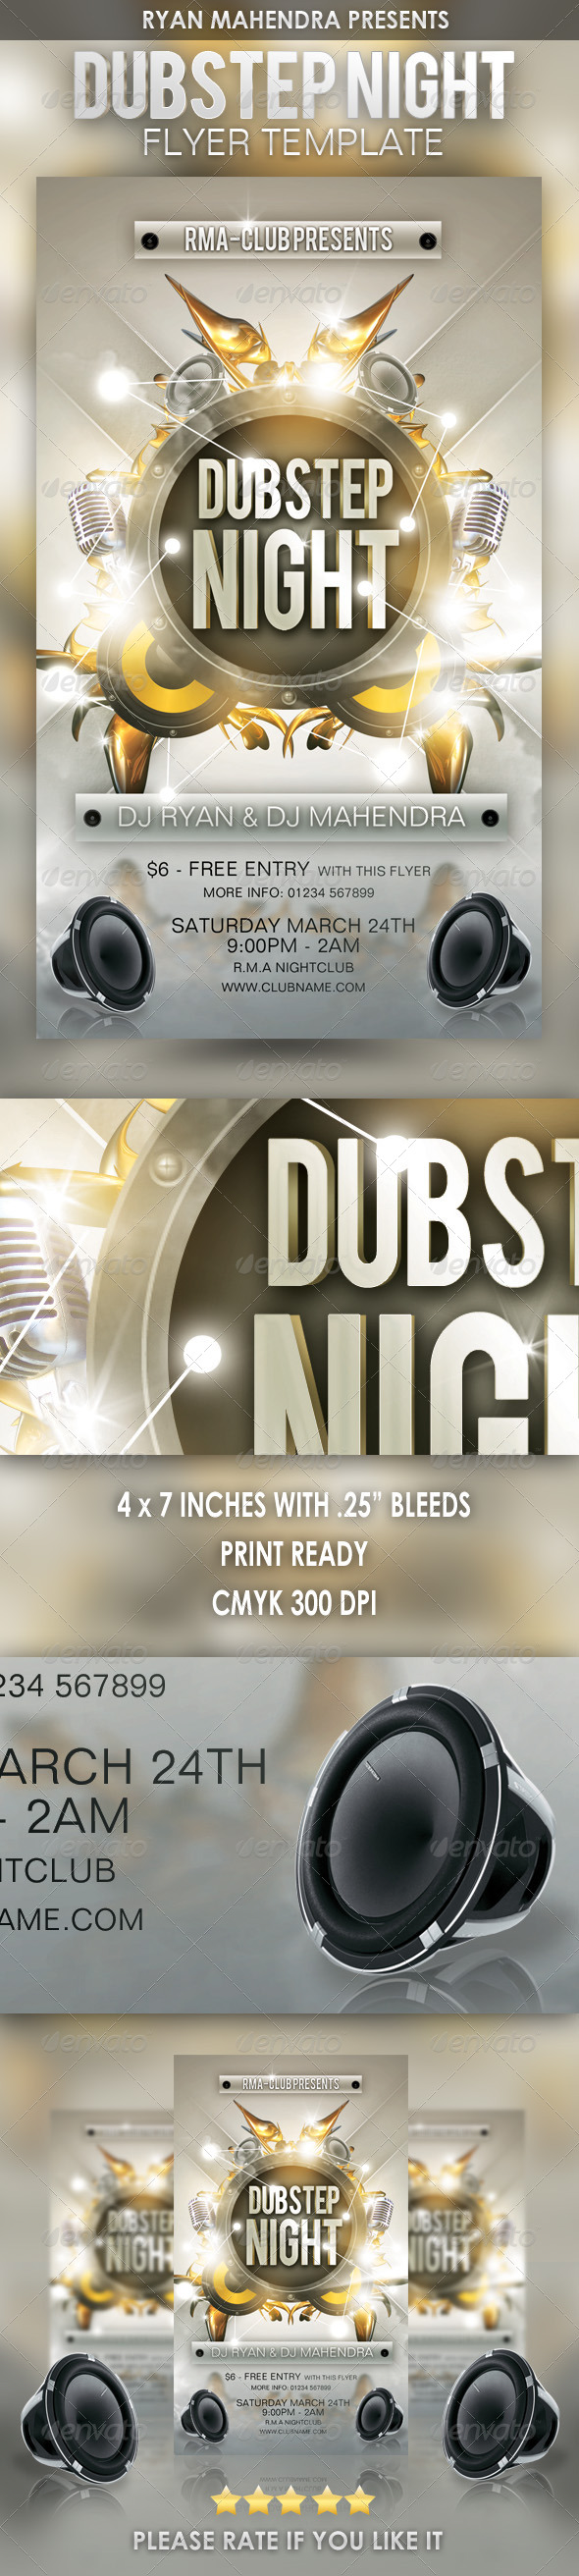 Dubstep Night Flyer Template - Clubs & Parties Events